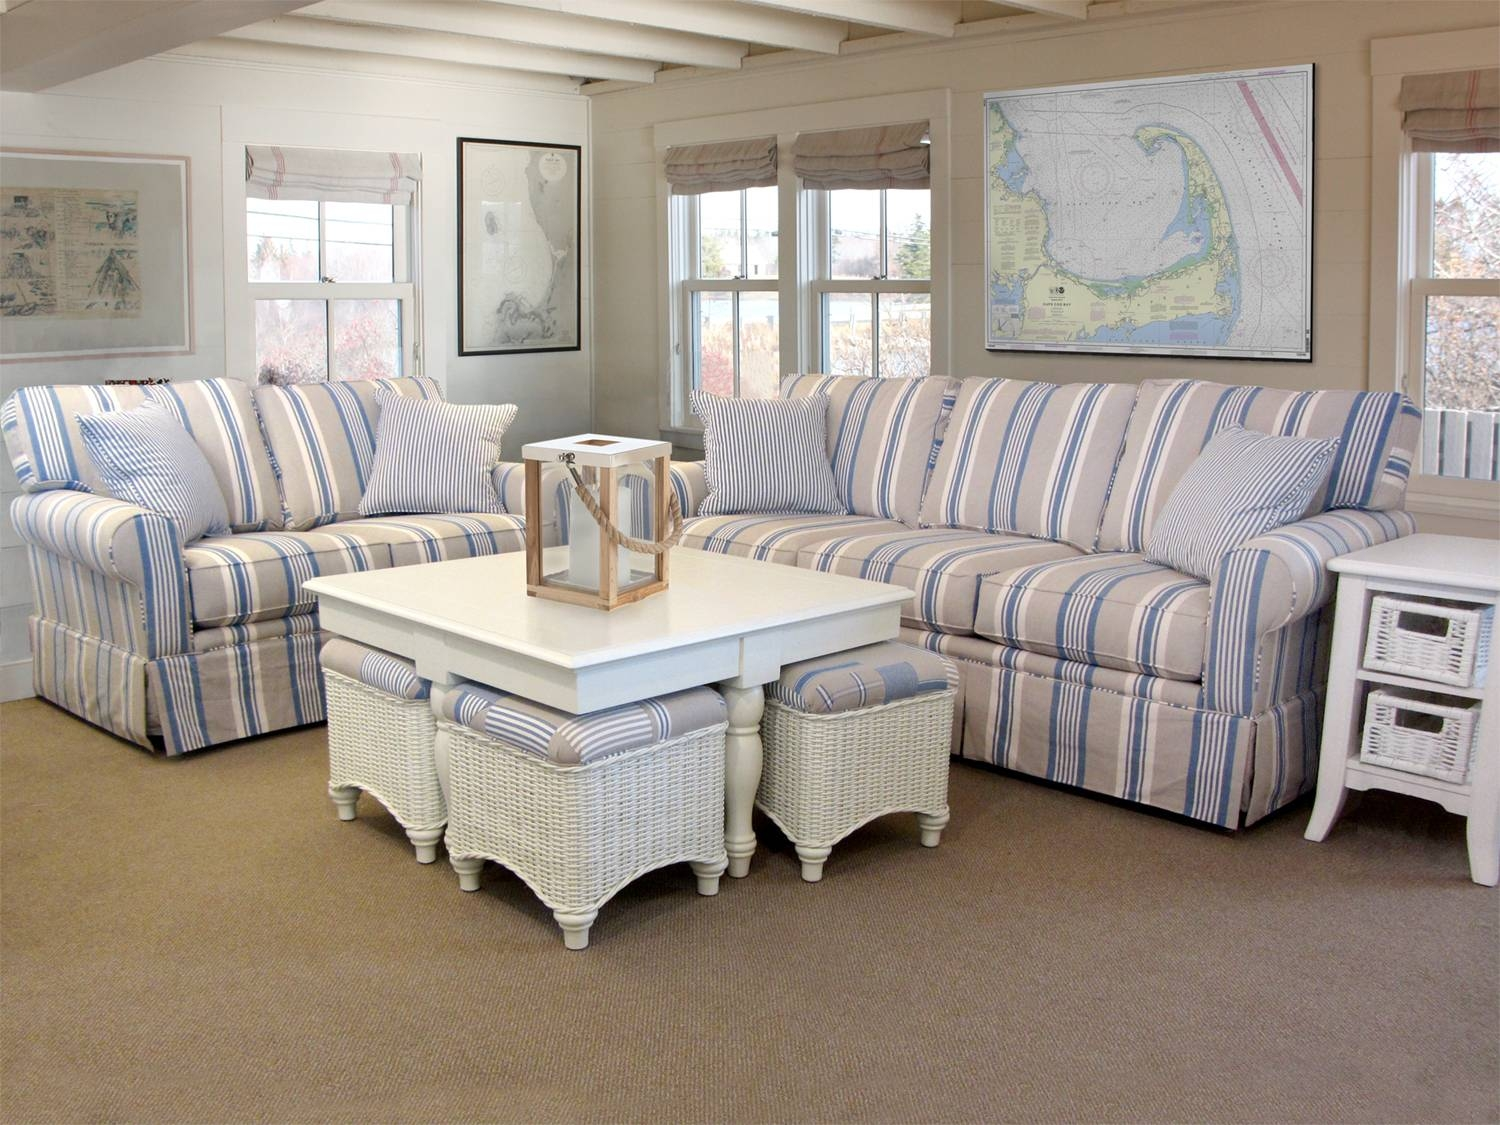 Awning Stripe Sofa | Barbos Furniture with Striped Sofas And Chairs (Image 4 of 30)